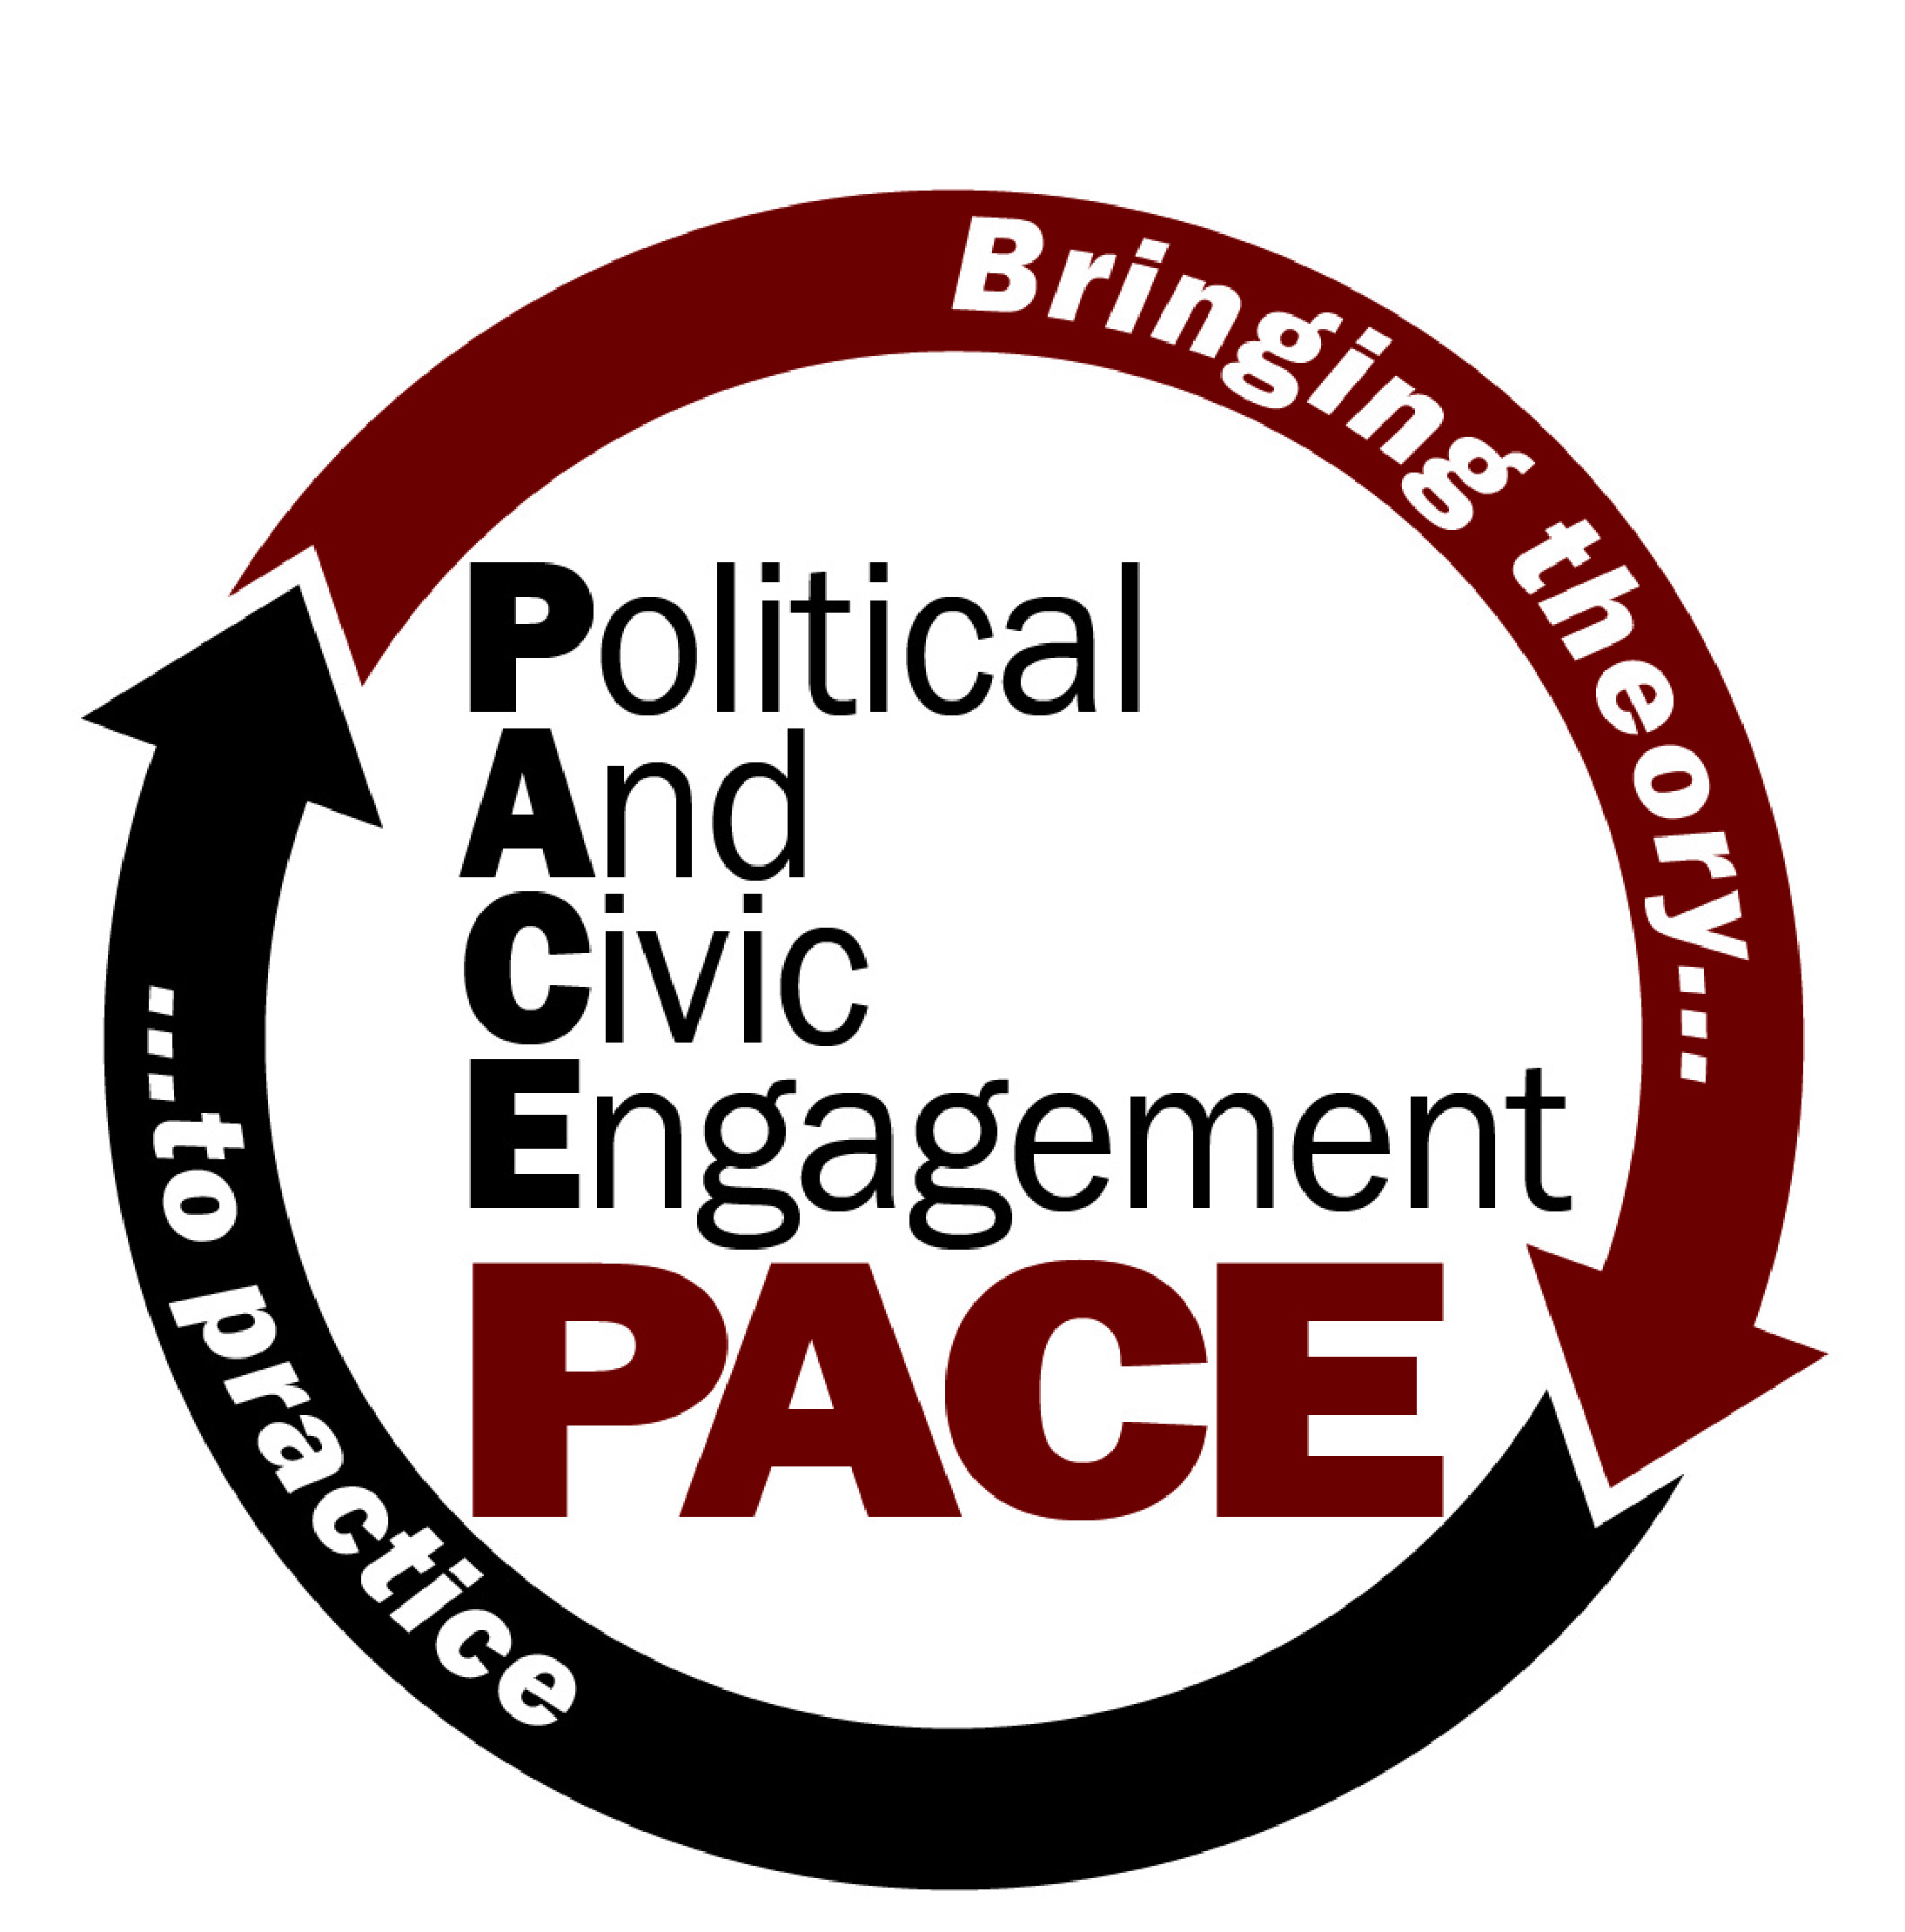 Political and civic engagement pace indiana university bloomington pace electives for fall 2017 1betcityfo Image collections